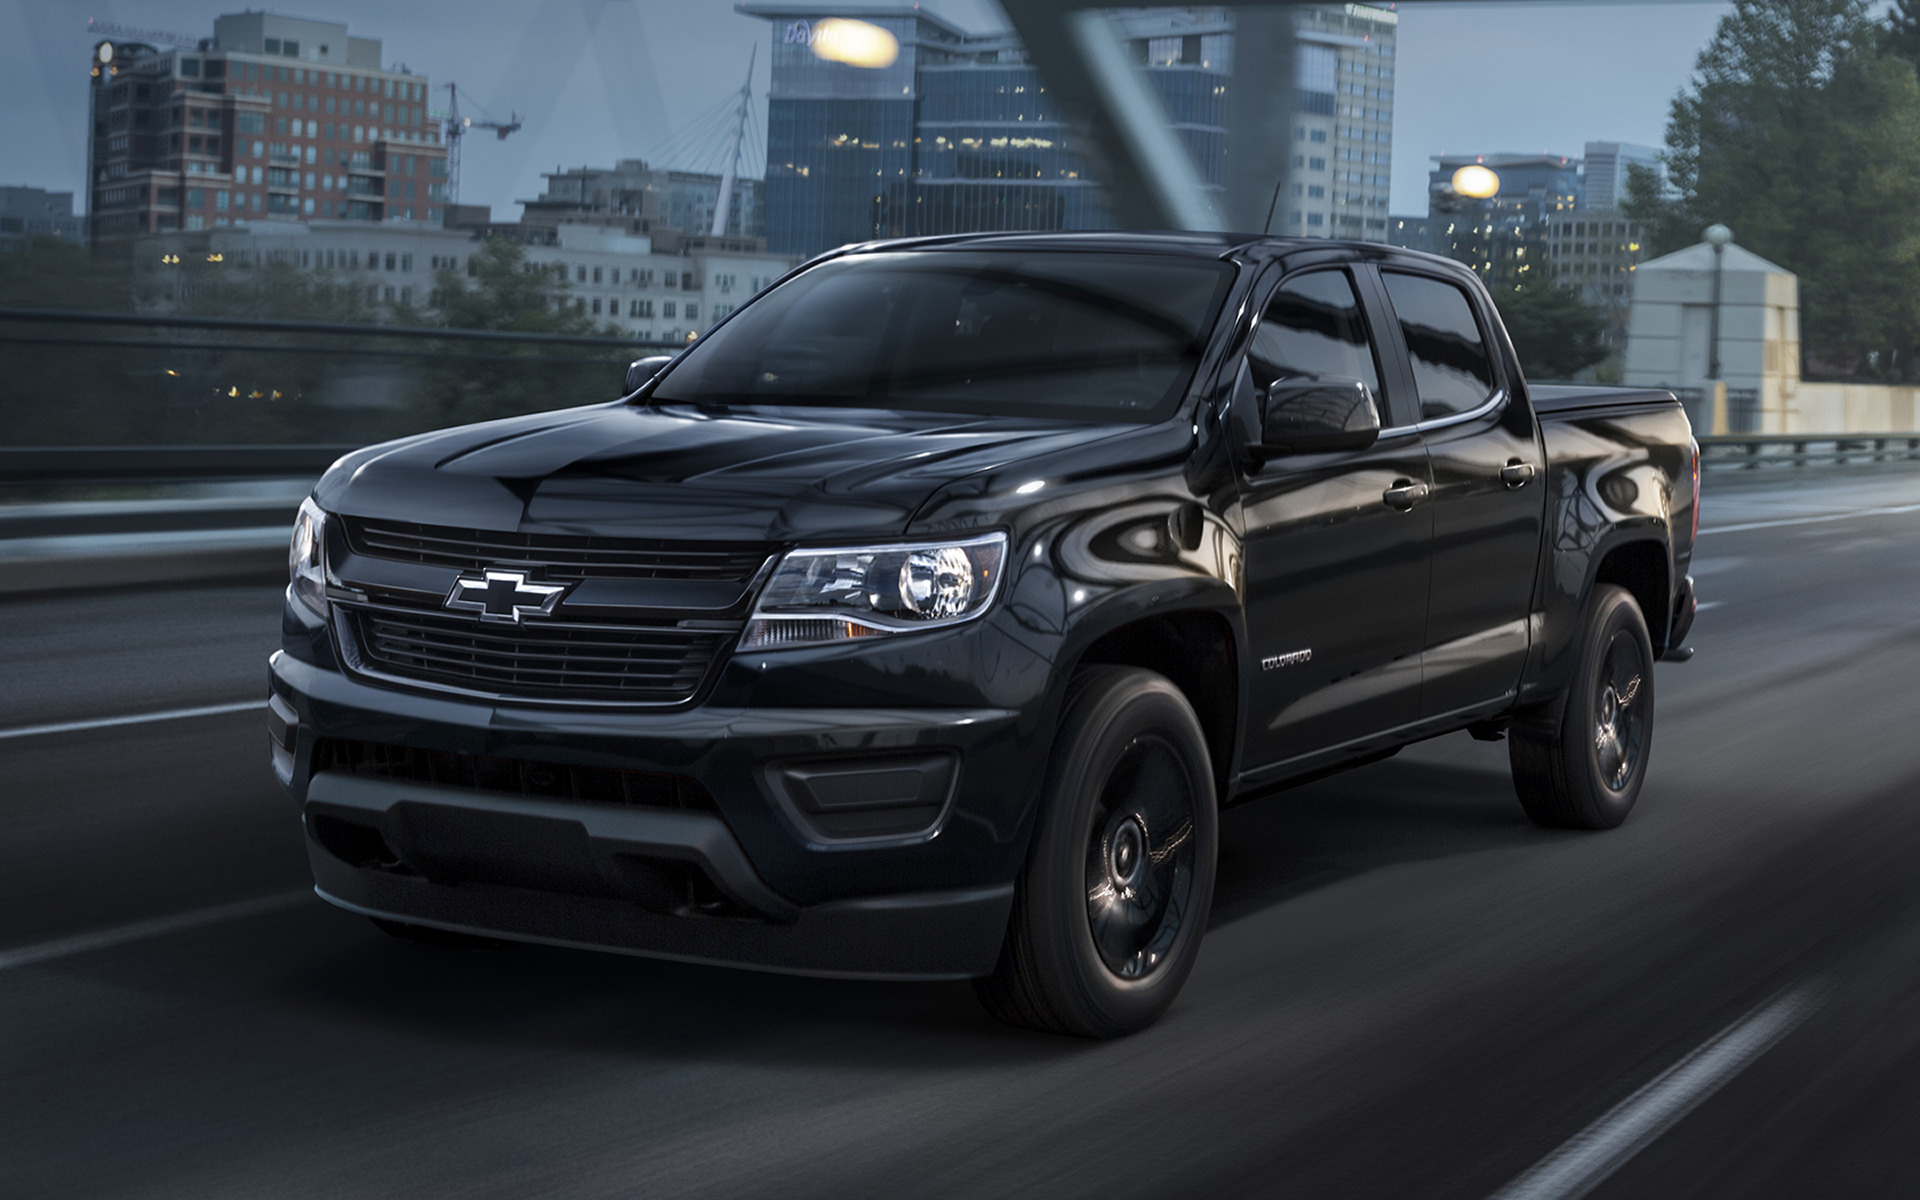 Chevrolet Colorado LT Midnight Crew Cab (2016) Wallpapers and HD Images - Car Pixel